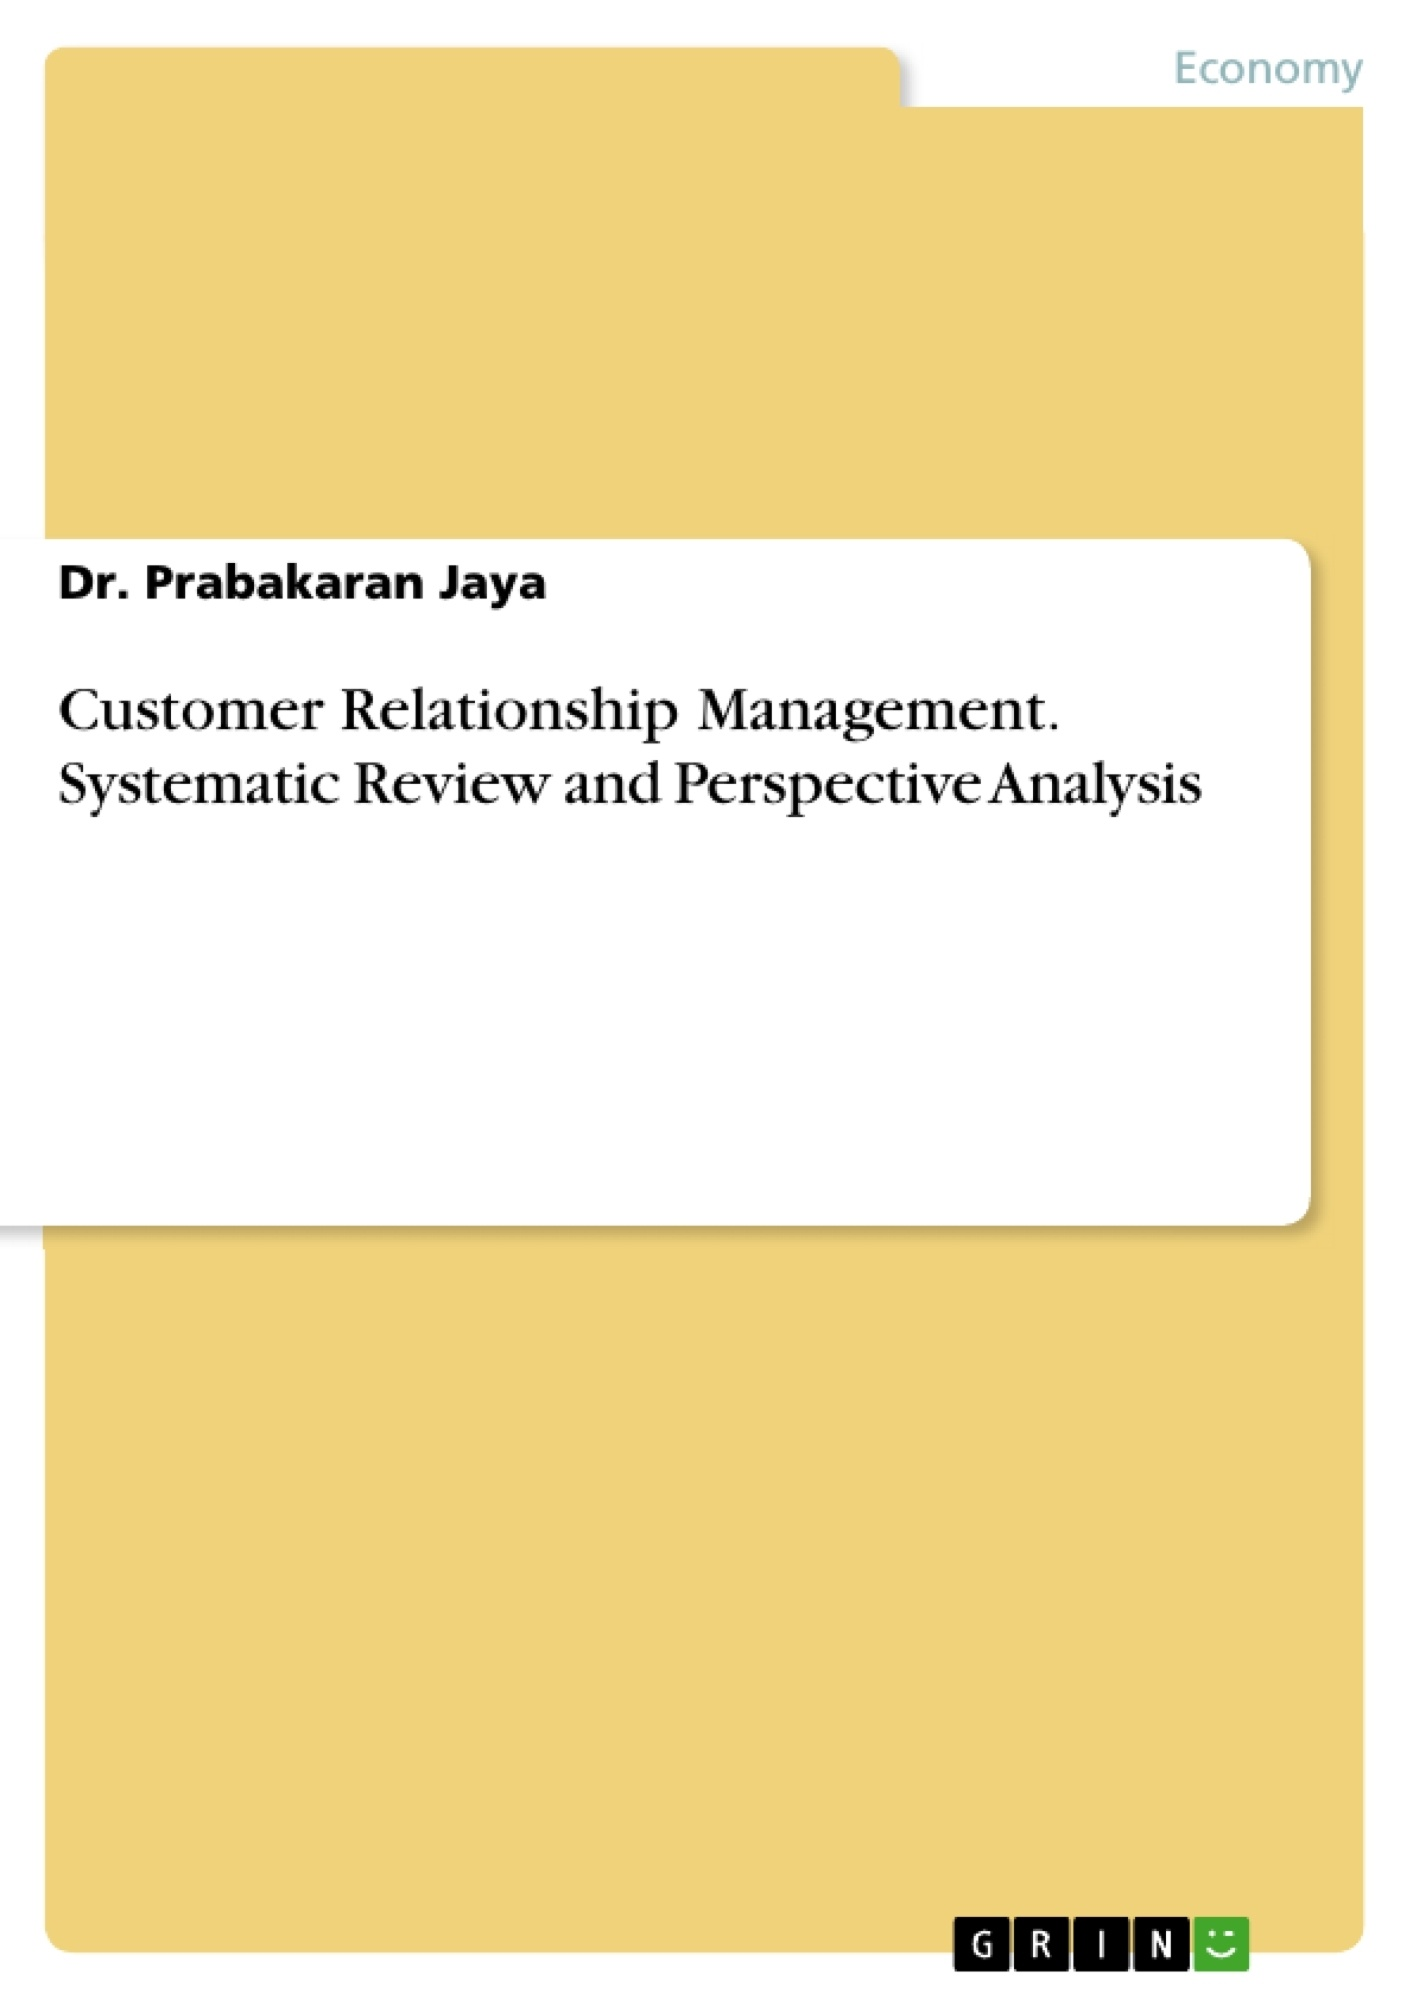 Title: Customer Relationship Management. Systematic Review and Perspective Analysis